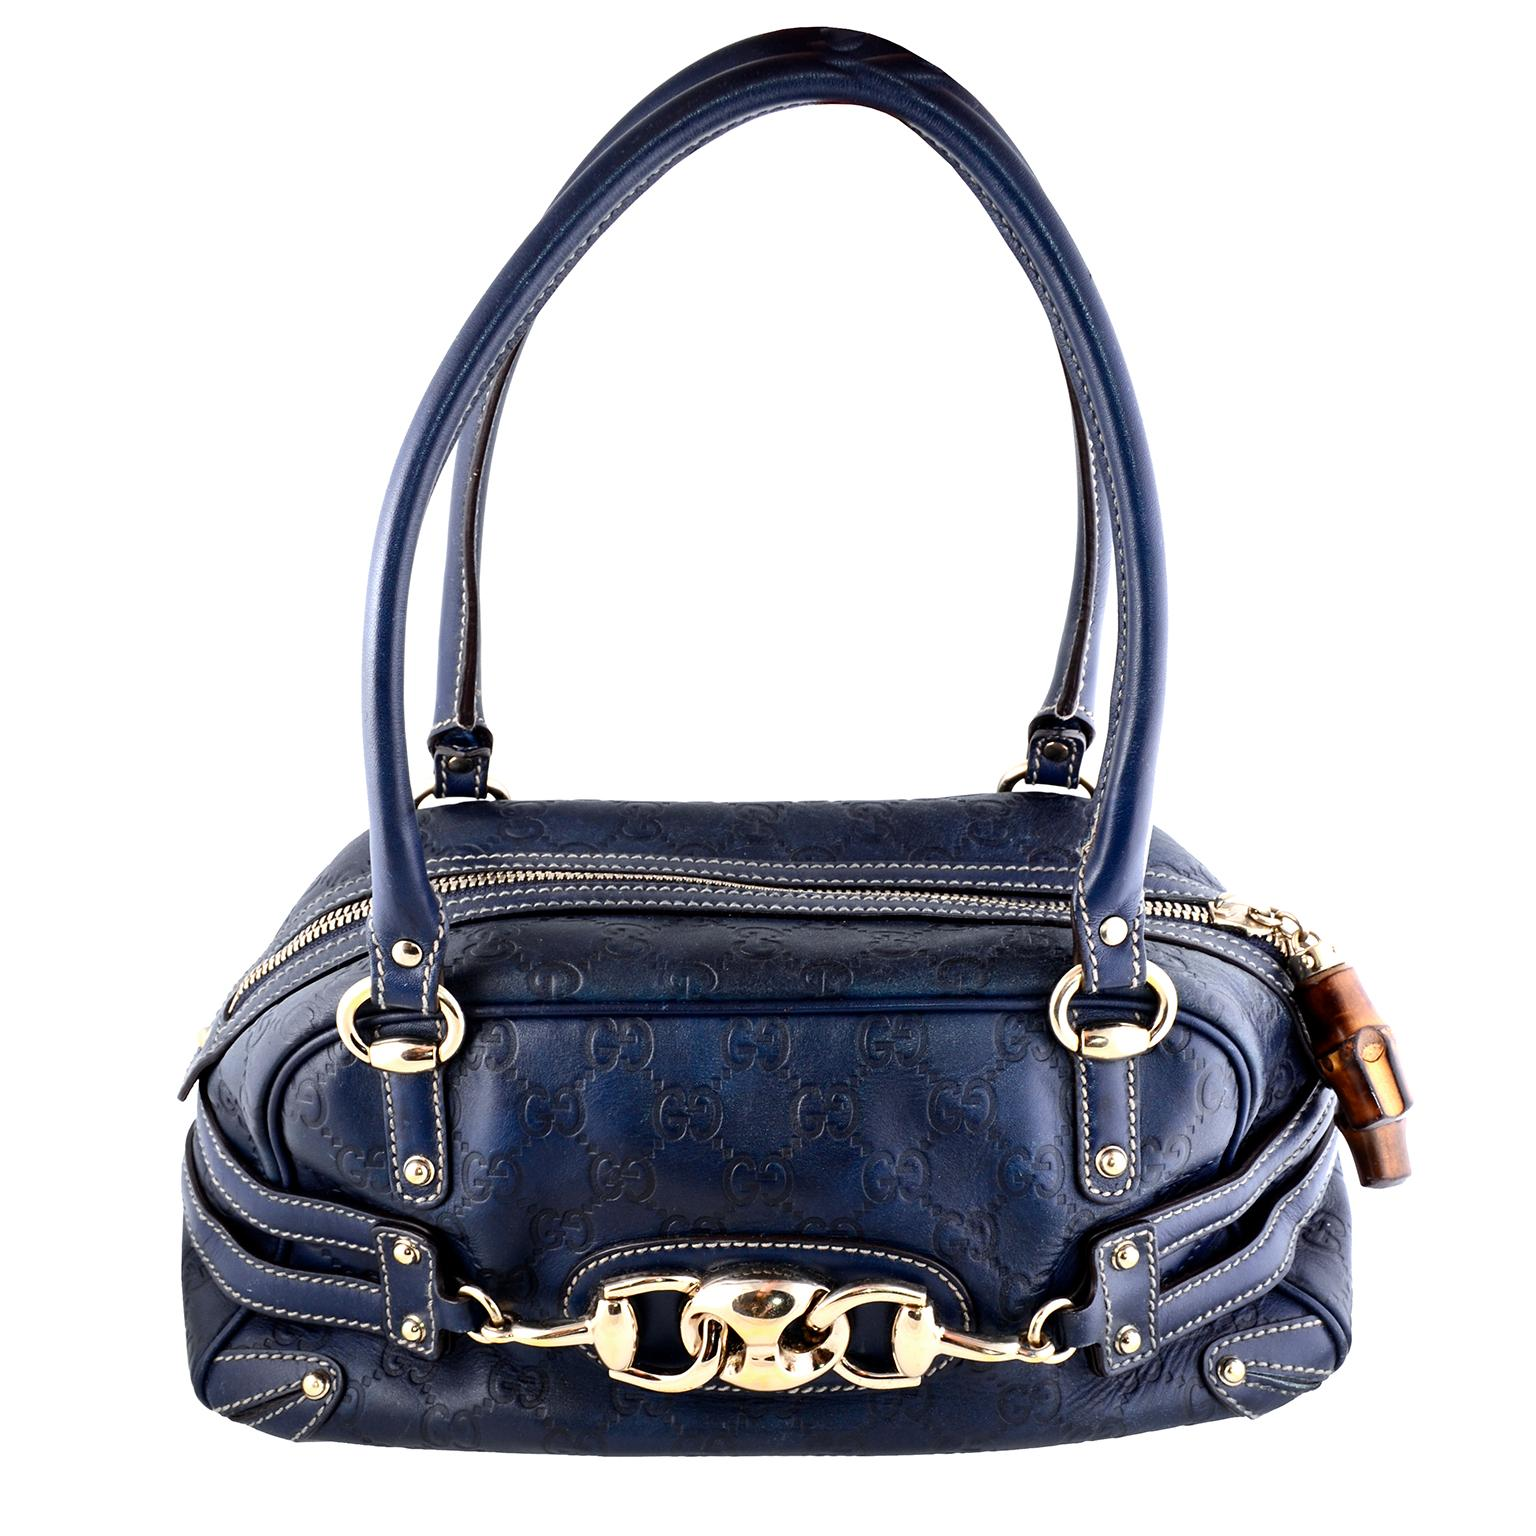 a2074c948 Vintage Gucci Handbags and Purses - 2,377 For Sale at 1stdibs